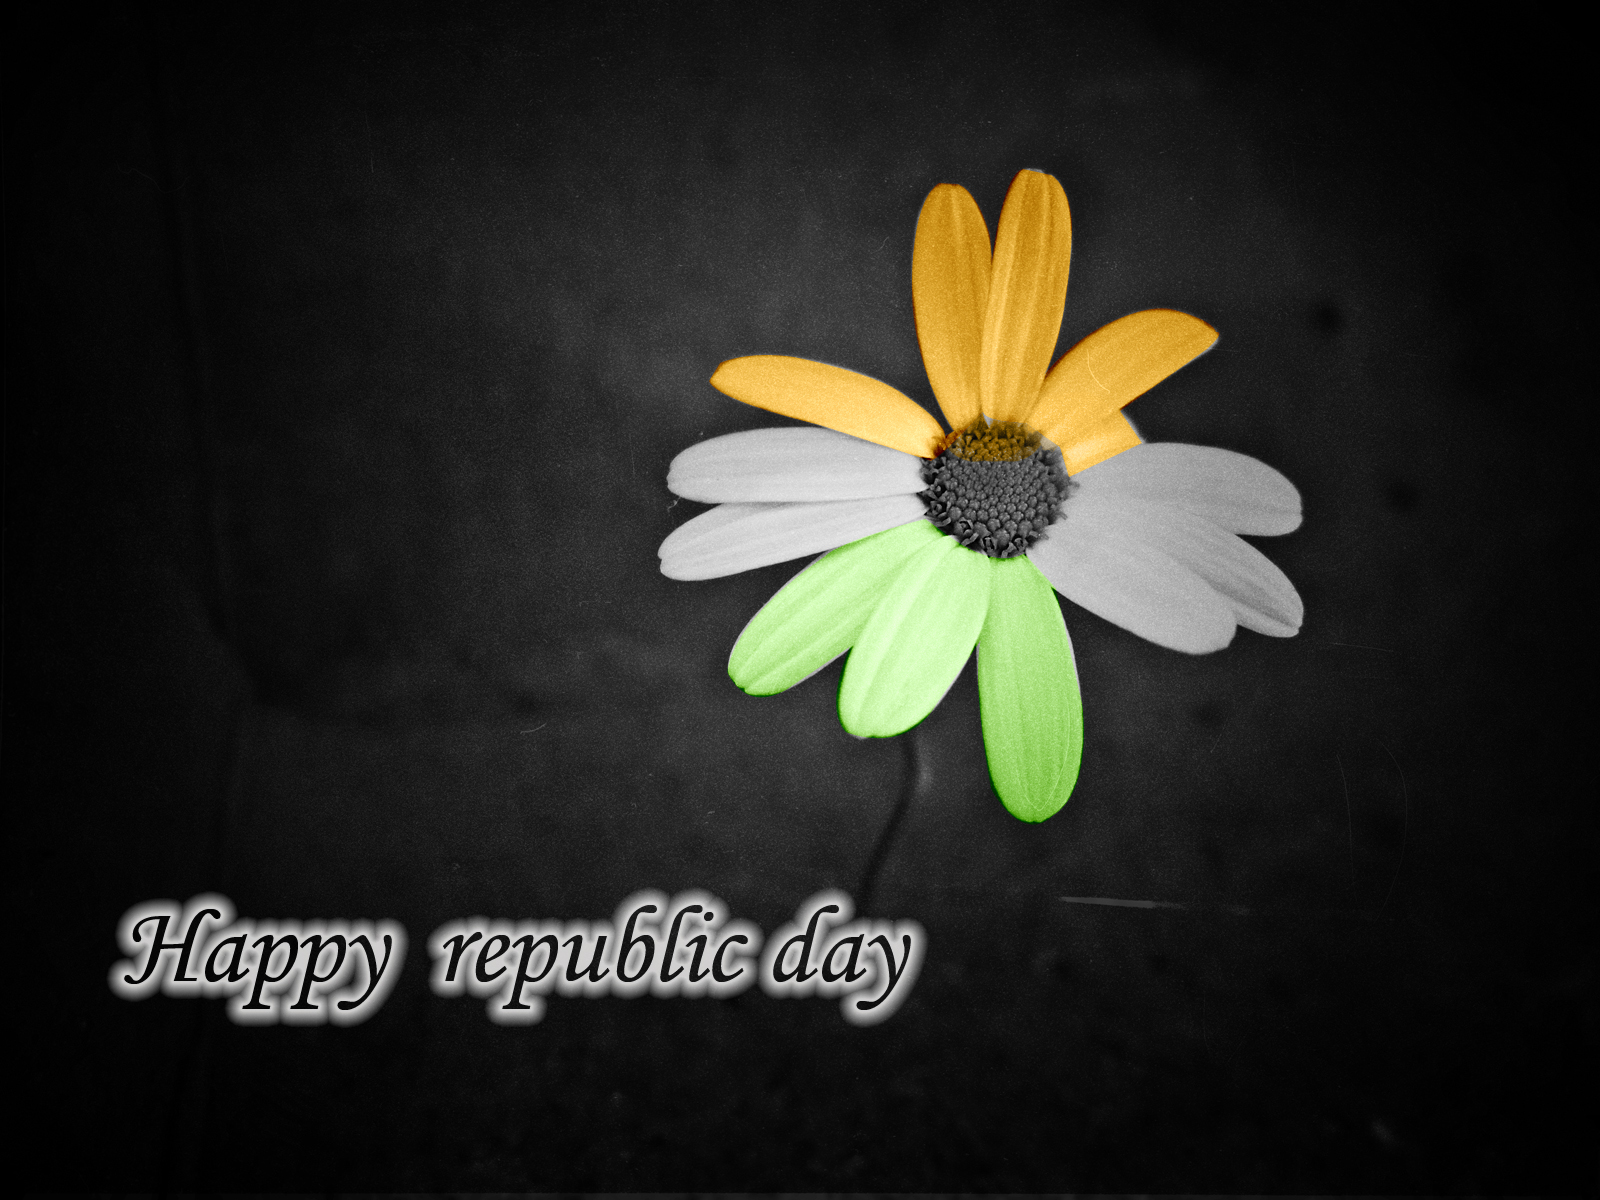 http://4.bp.blogspot.com/--HzbiixXj9g/UP4iqC0teBI/AAAAAAAAISQ/KbspZMSsR1o/s1600/happy+republic+day+wallpaper.jpg